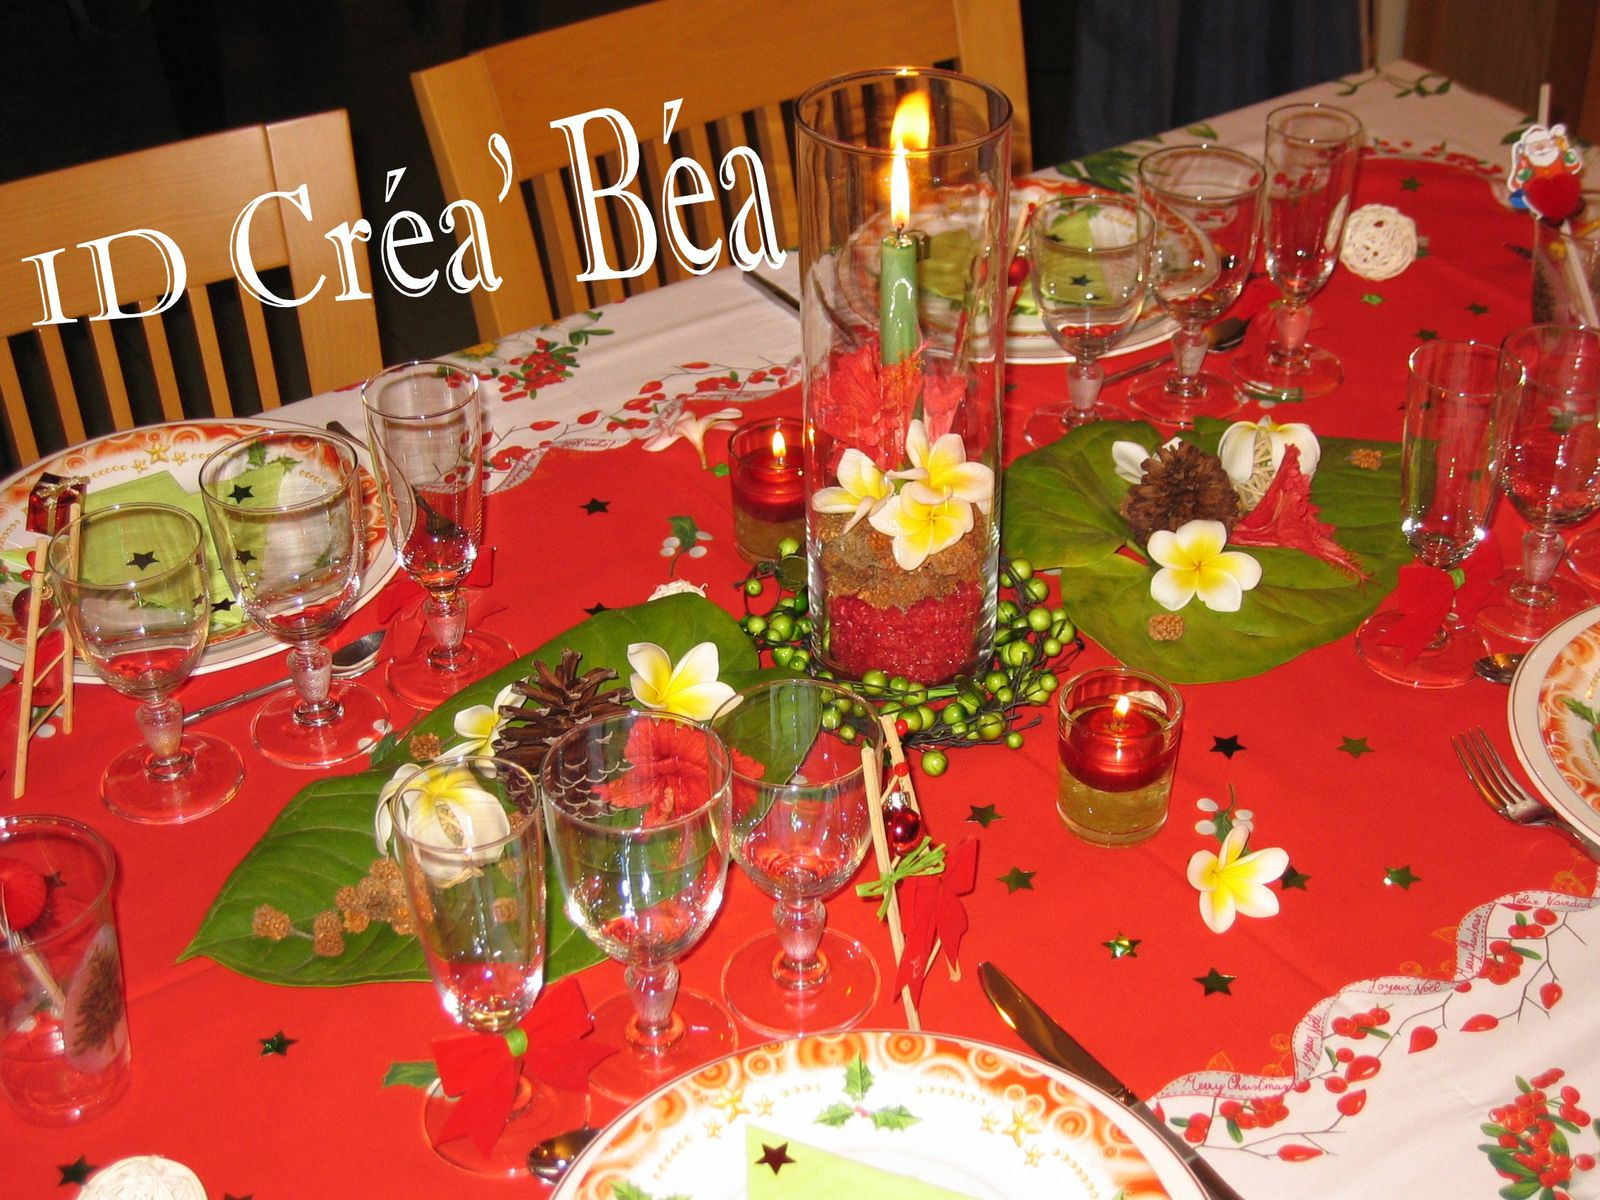 Decoration table de noel vert et rouge - Decorations de table pour noel ...